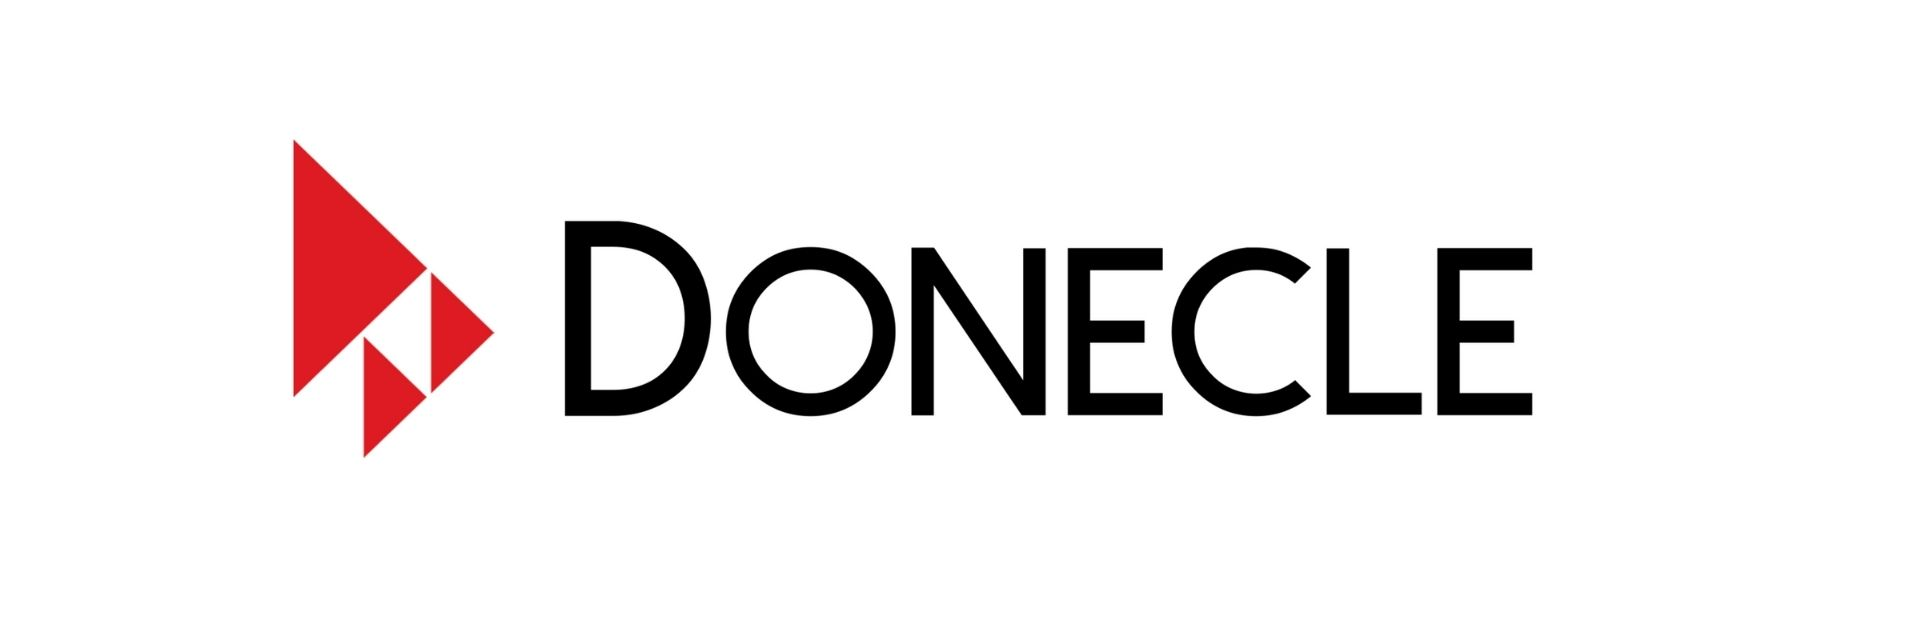 logo of donecle, a Mainblades drone alternative